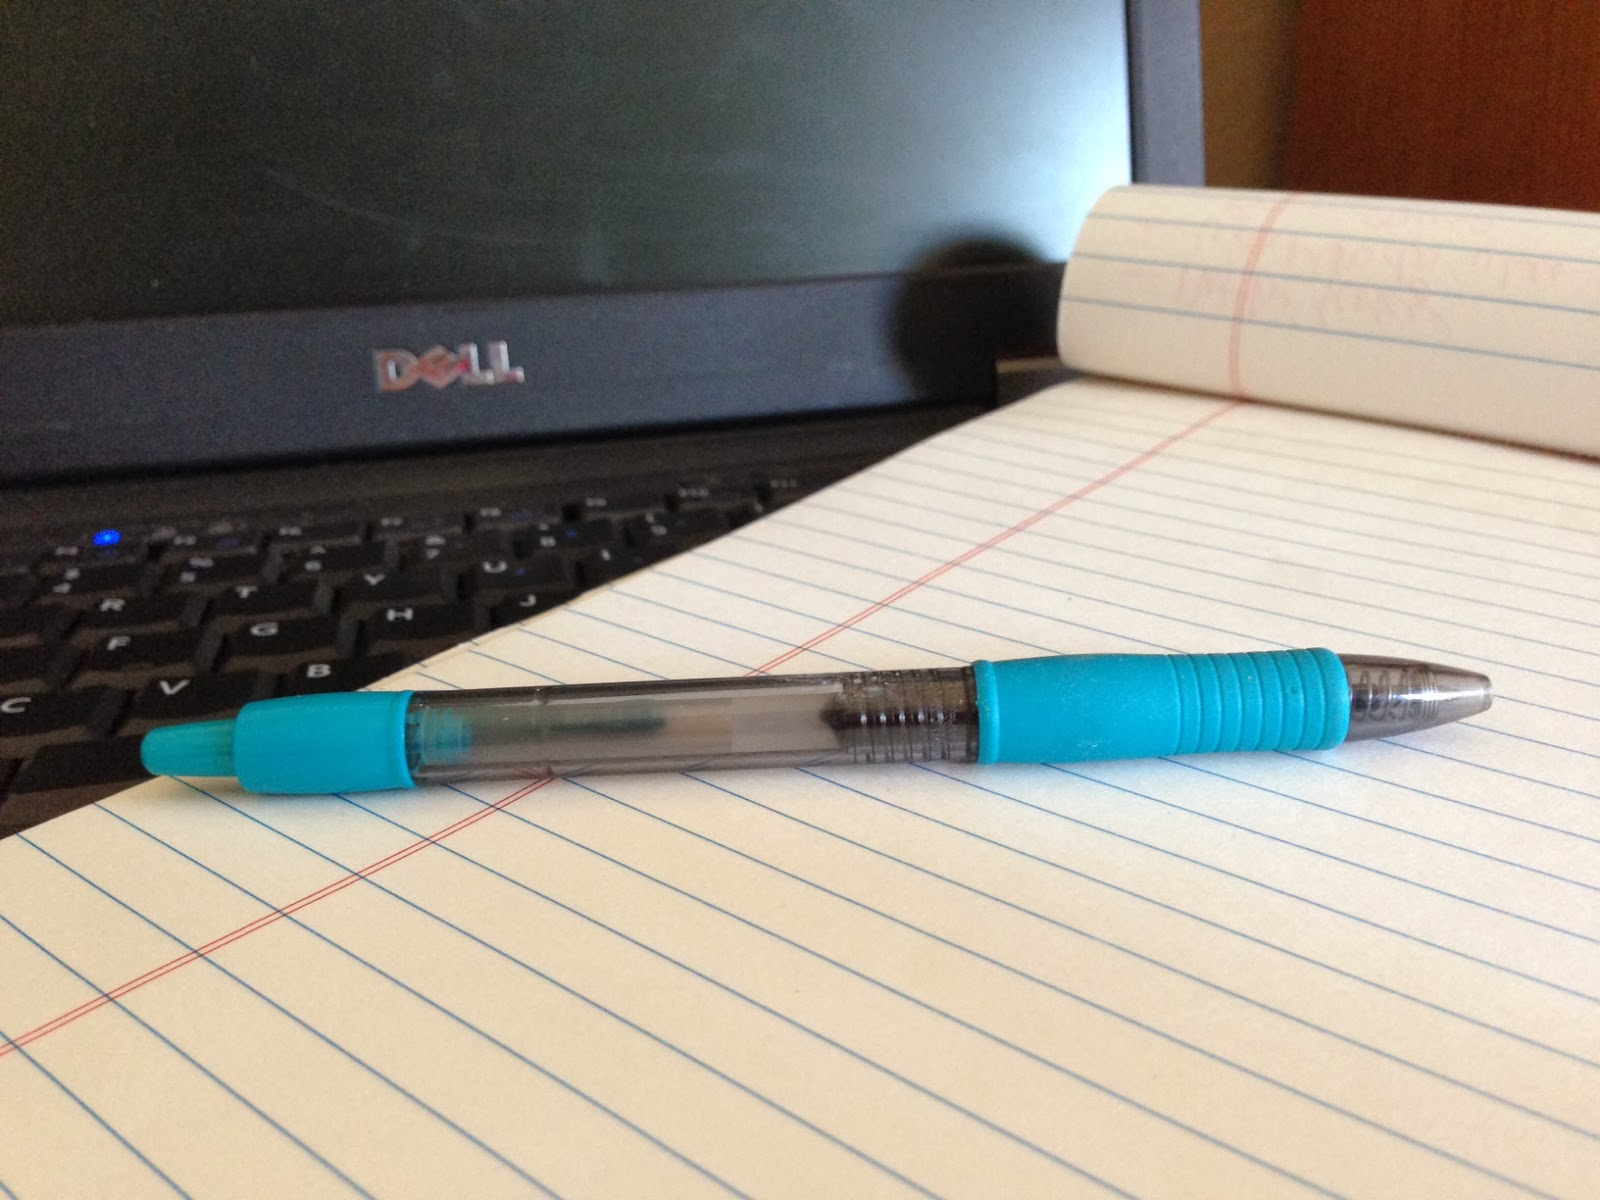 Paper note-taking: Not old-school… genius